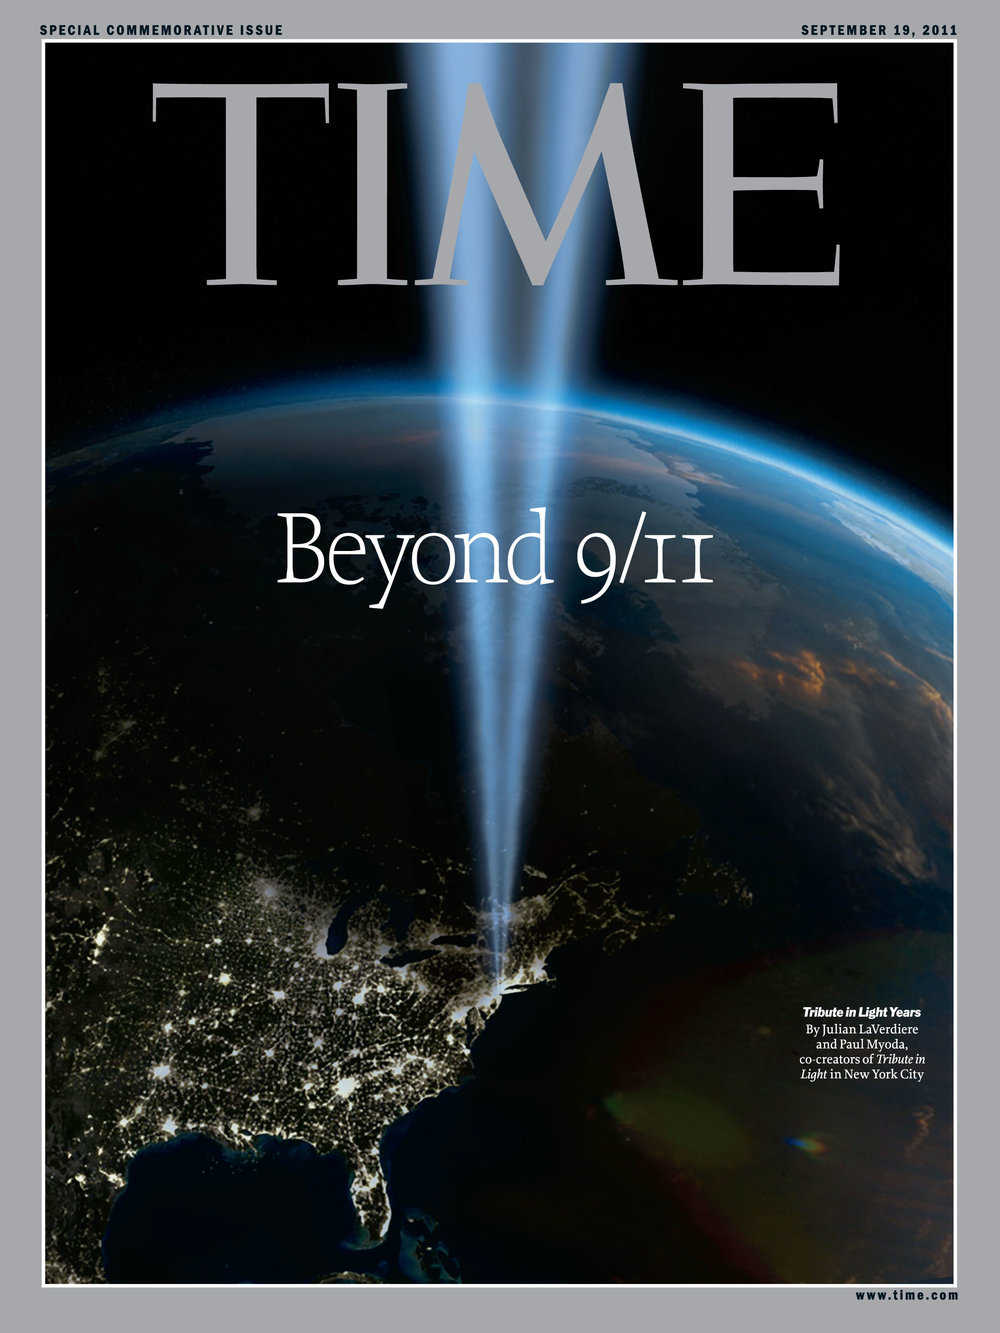 Photo-Illustration by Julian LaVerdiere and Paul Myoda for TIME